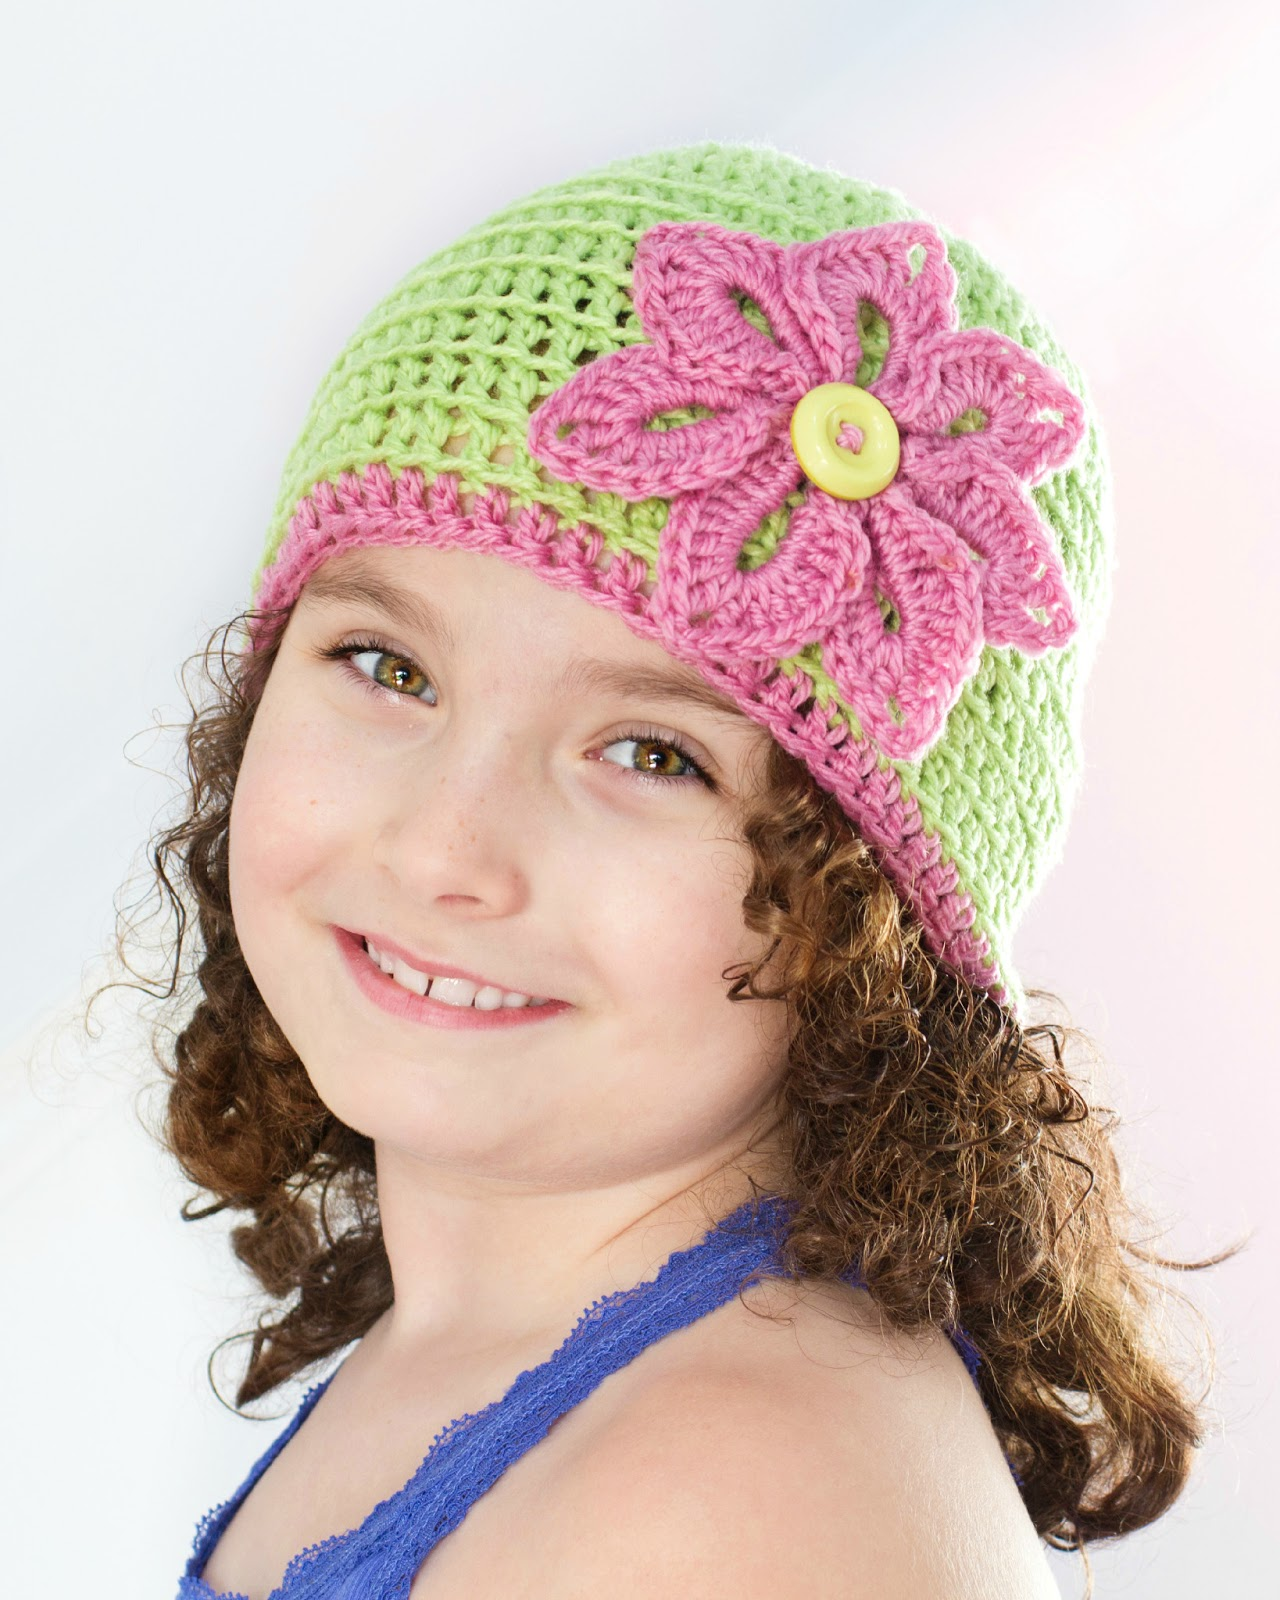 Crochet Beanie Pattern With Flower : Hopeful Honey Craft, Crochet, Create: Basic Spring ...